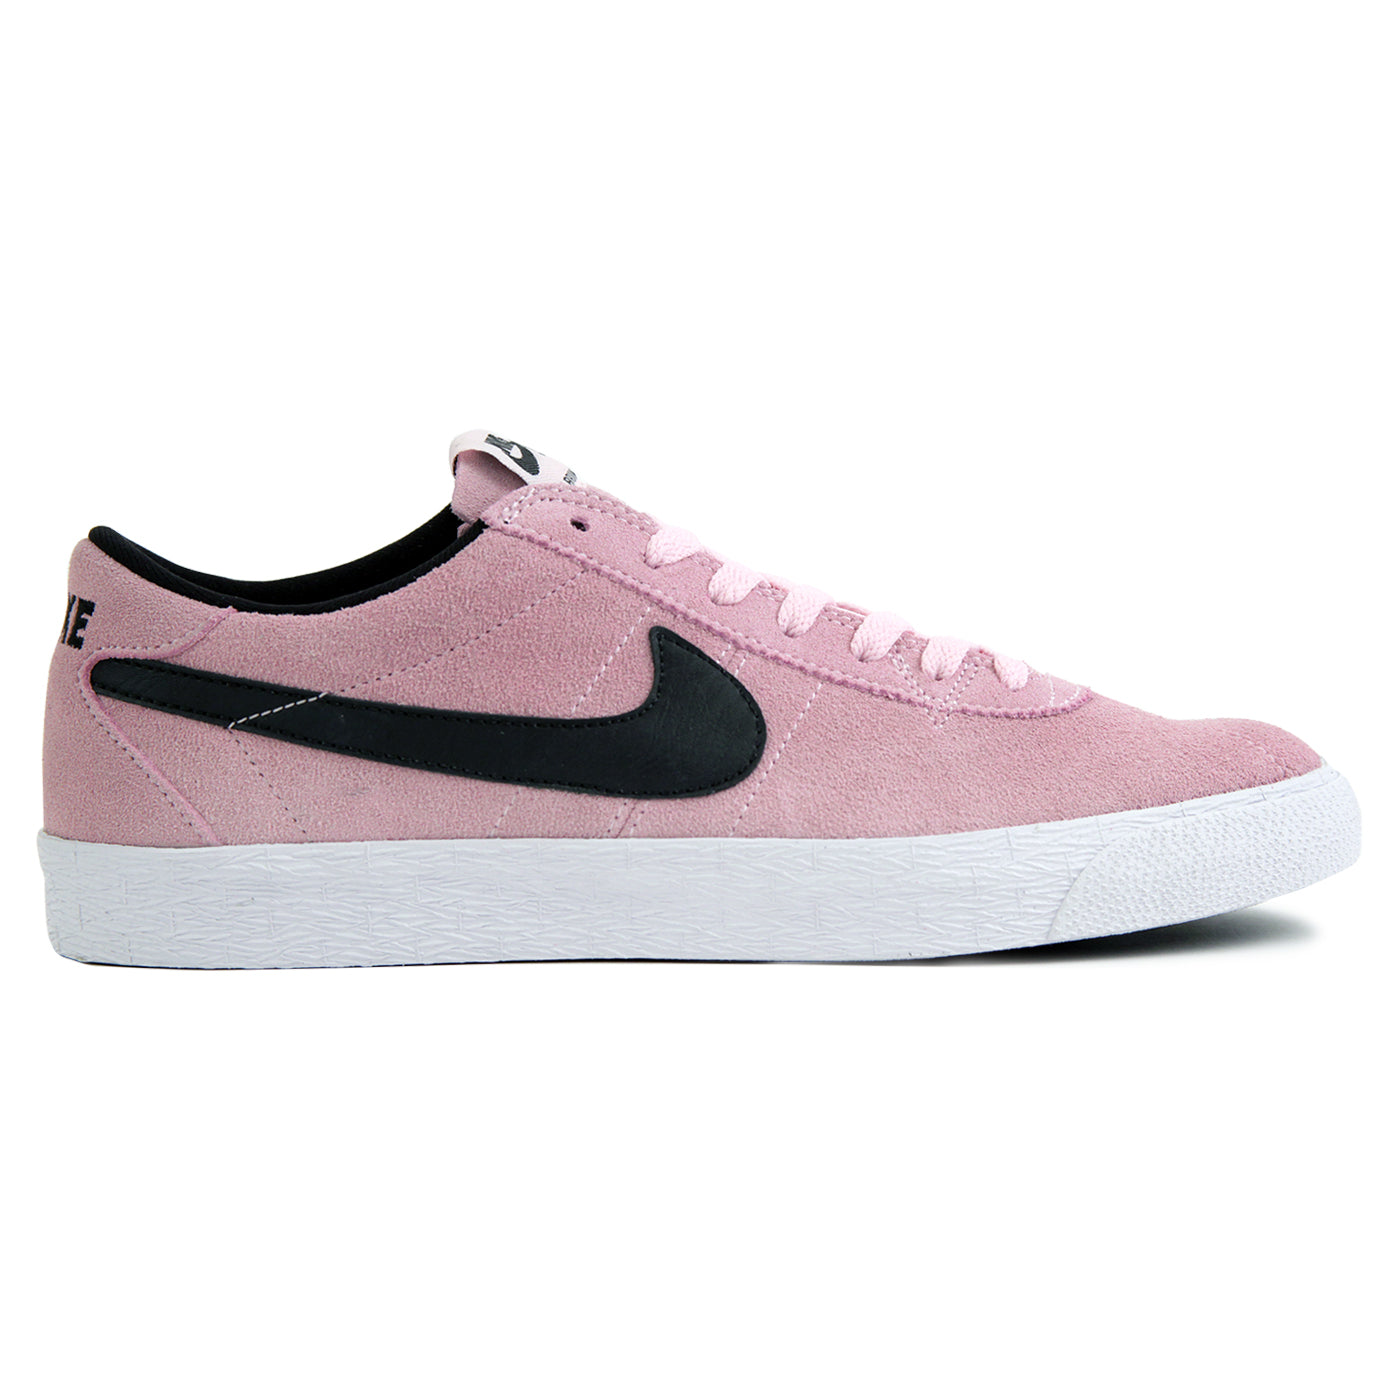 26cba71c3285 Bruin Premium SE Shoes in Prism Pink   Black - White by Nike SB ...